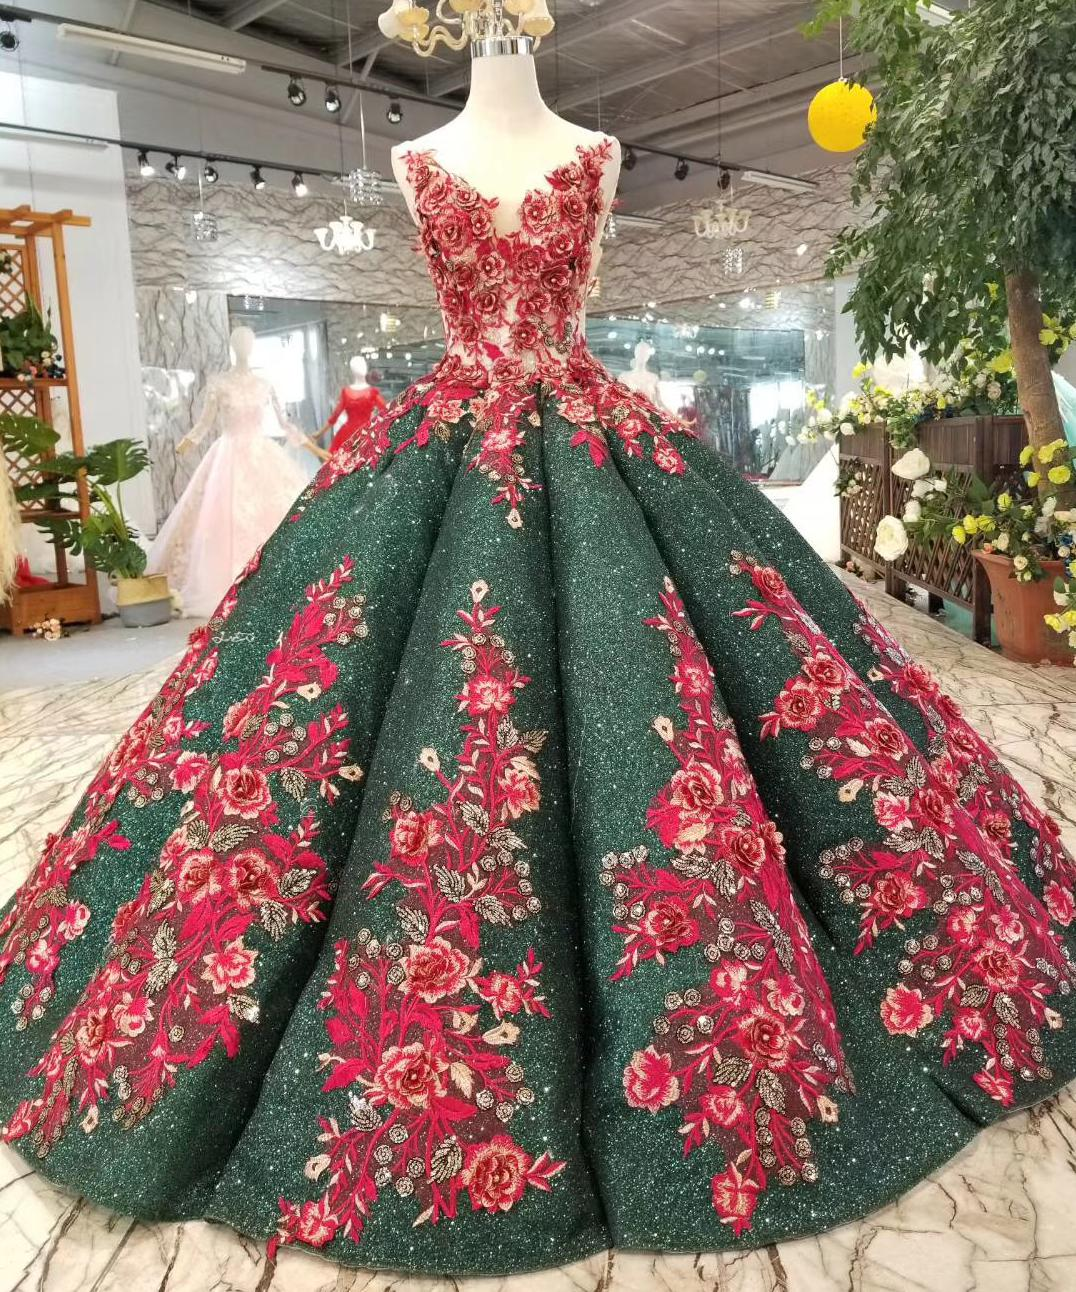 22984b79cd US $495.0 10% OFF|2019 Desamazing Omg Waves Long Evening Dress Ball Gown  Emerald Green Lace Red Wedding Party Gowns 2018 Red Formal Prom Dresses-in  ...